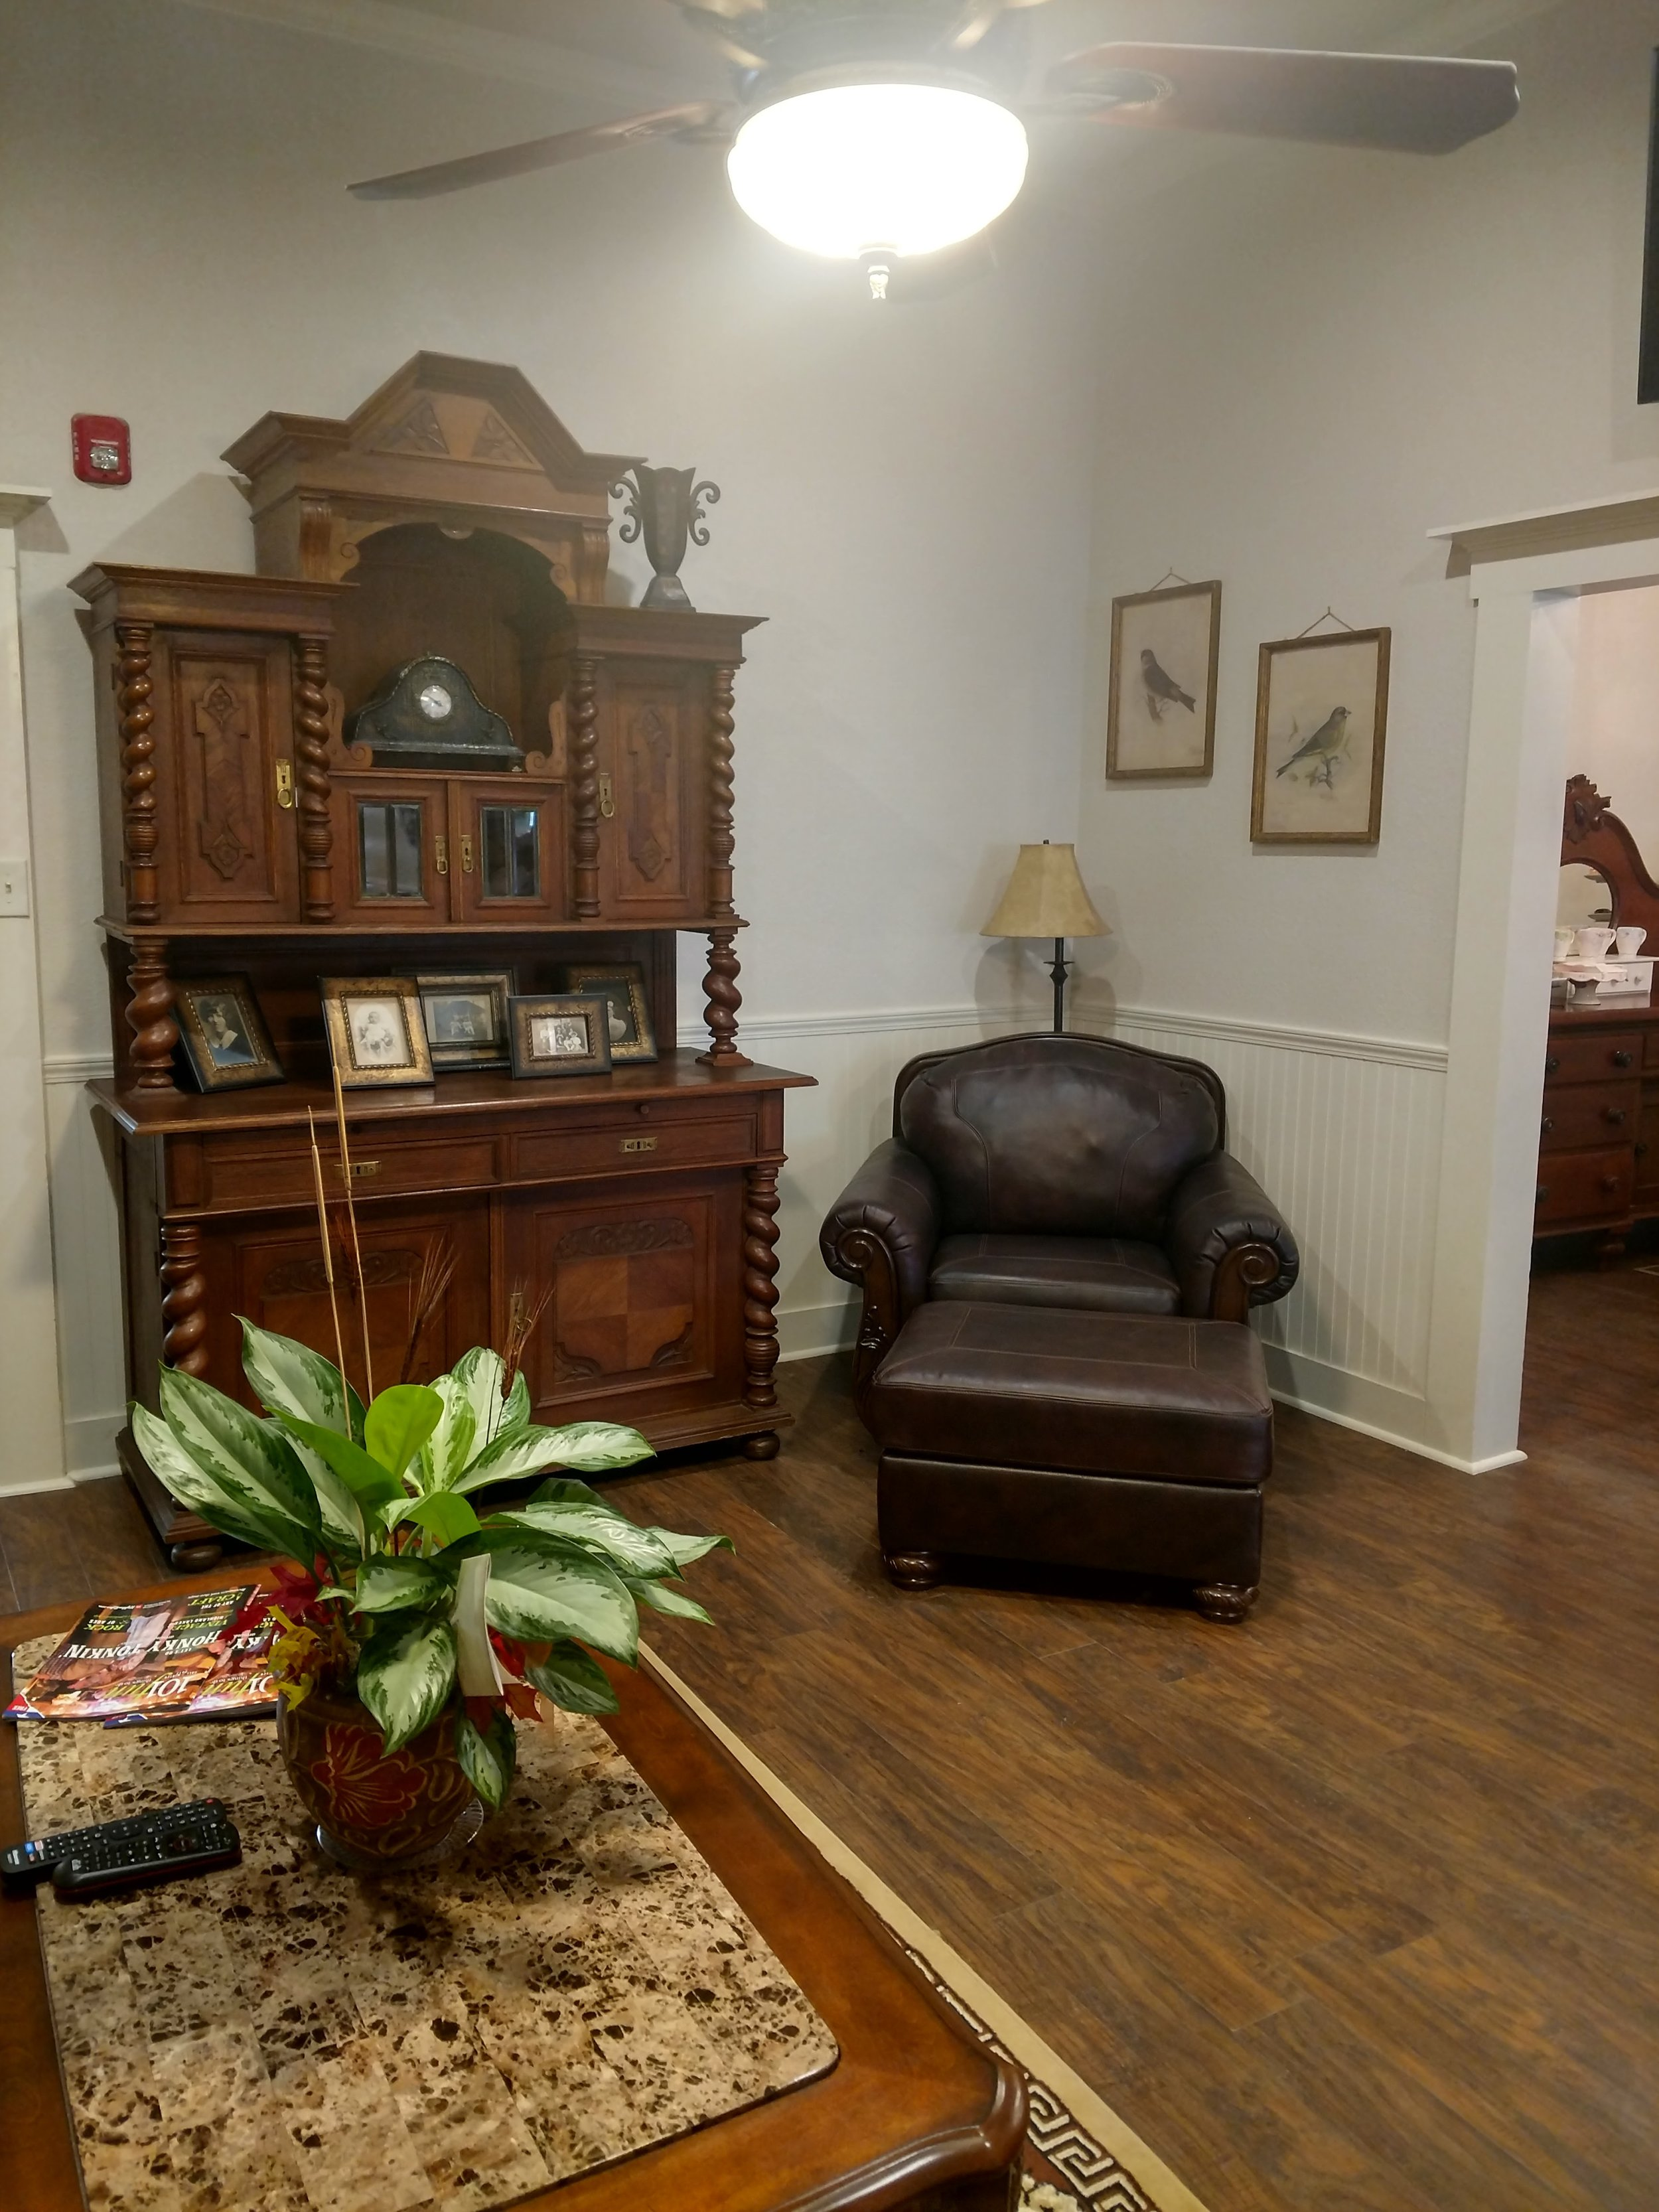 Living Room Chair and Decorative Furniture Piece